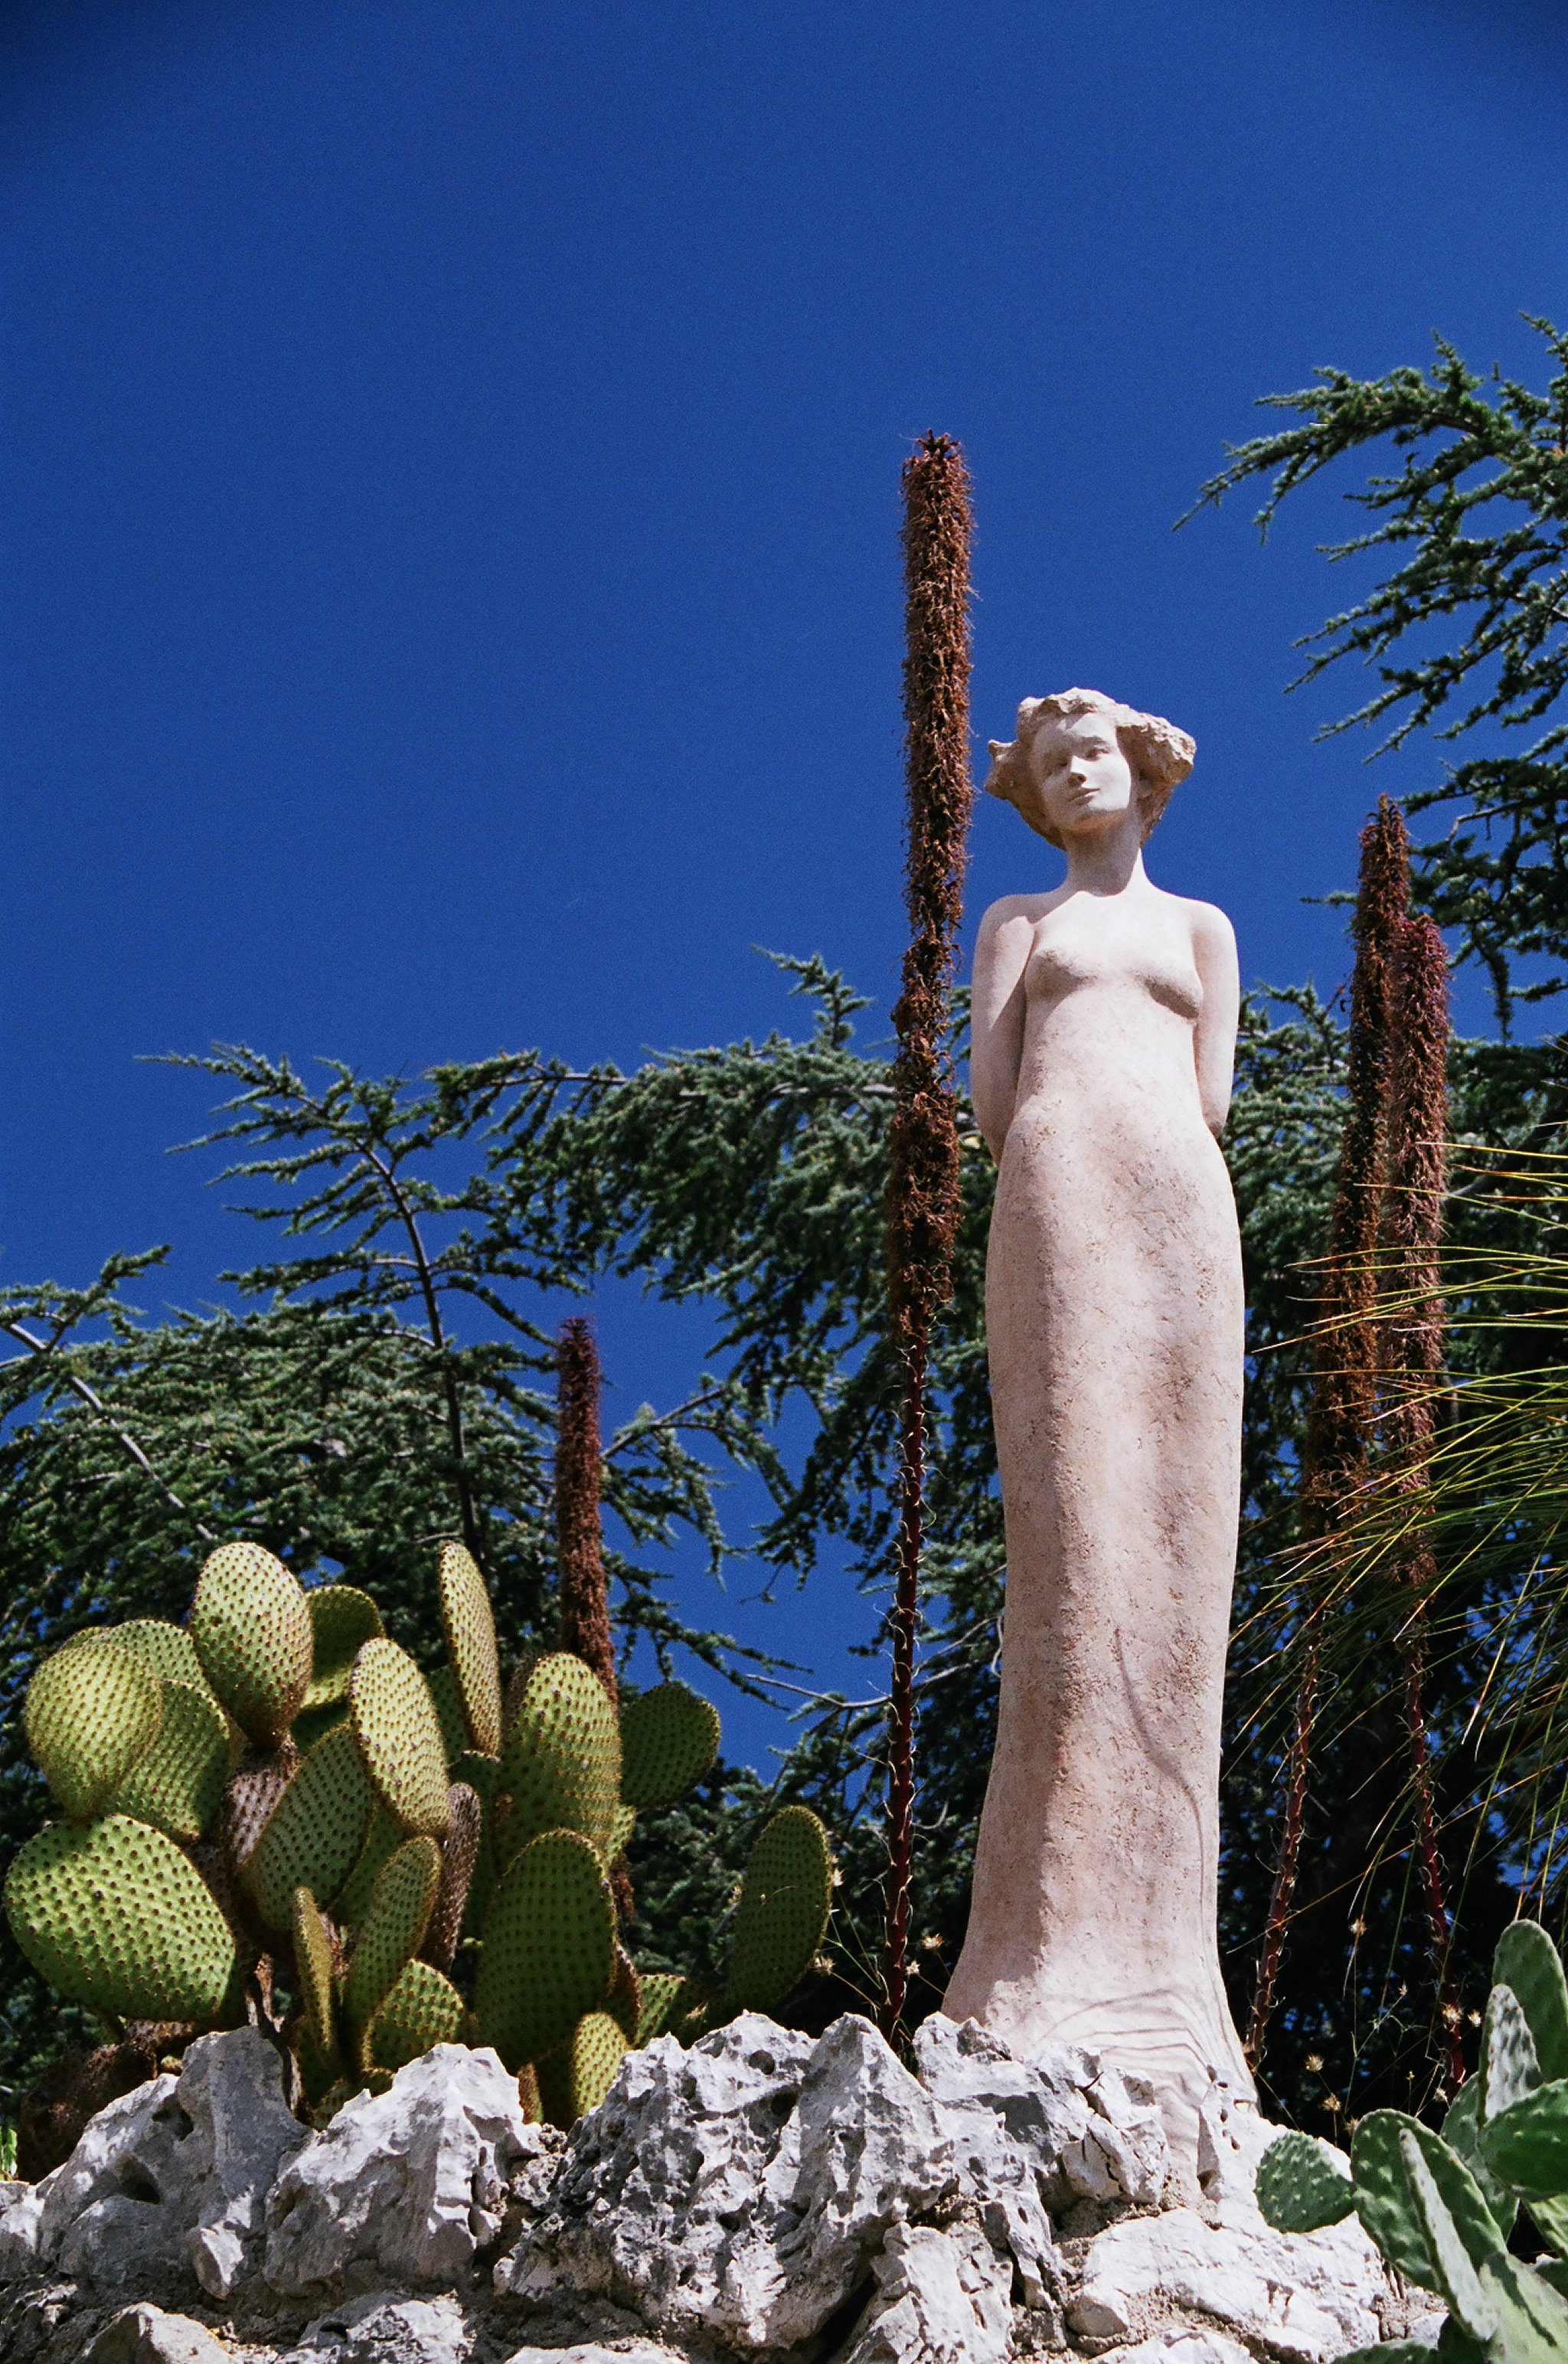 Saisir la perche one quality the finest for Eze jardin exotique statues